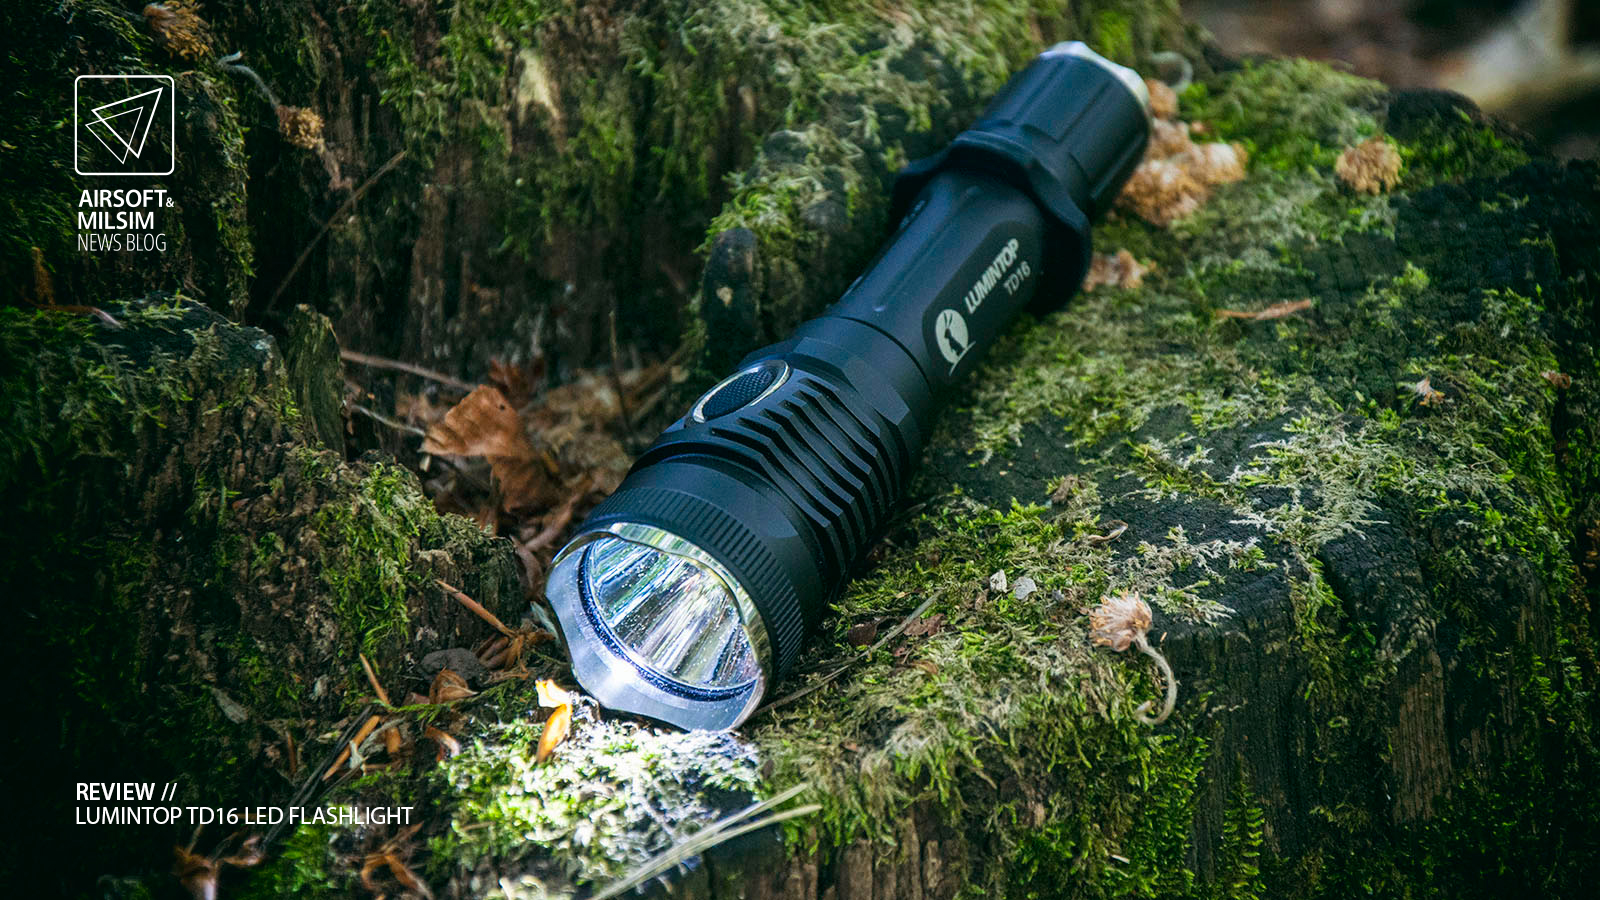 REVIEW LUMINTOP TD16 LED FLASHLIGHT